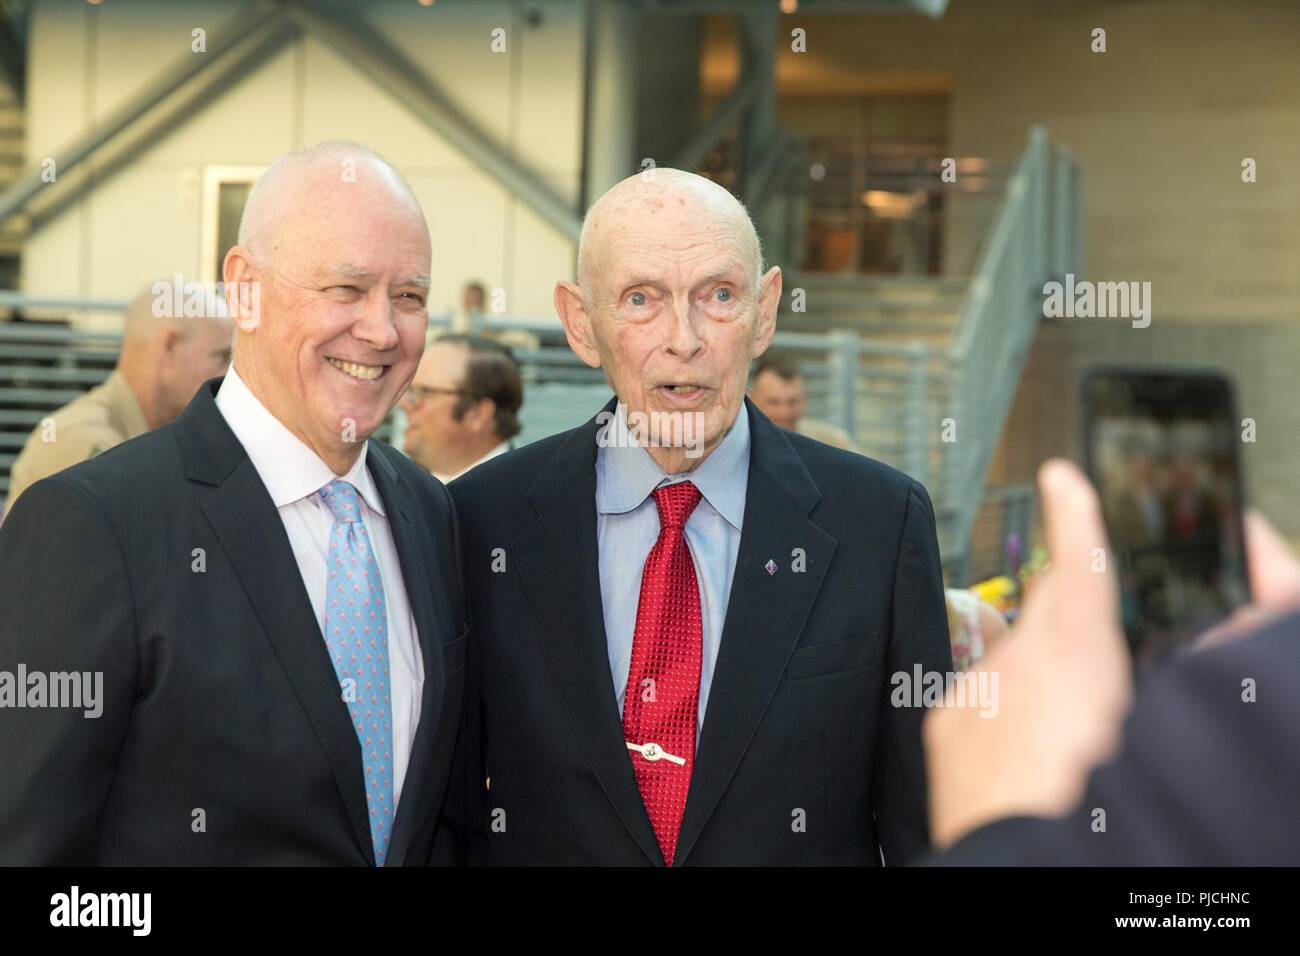 Richard L. Alderson, general manager of the New York Mets baseball team, and James A. Gillcrist, record setting high jumper, pose for a photo during the 2018 United States Marine Corps Sports Hall of Fame Induction Ceremony at the National Museum of the Marine Corps, Triangle, Va., July 18, 2018. The event was held for the induction of it's three newest members including both James A. Gillcrist and Richard L. Alderson, as well as Theodore A. Lyons. - Stock Image